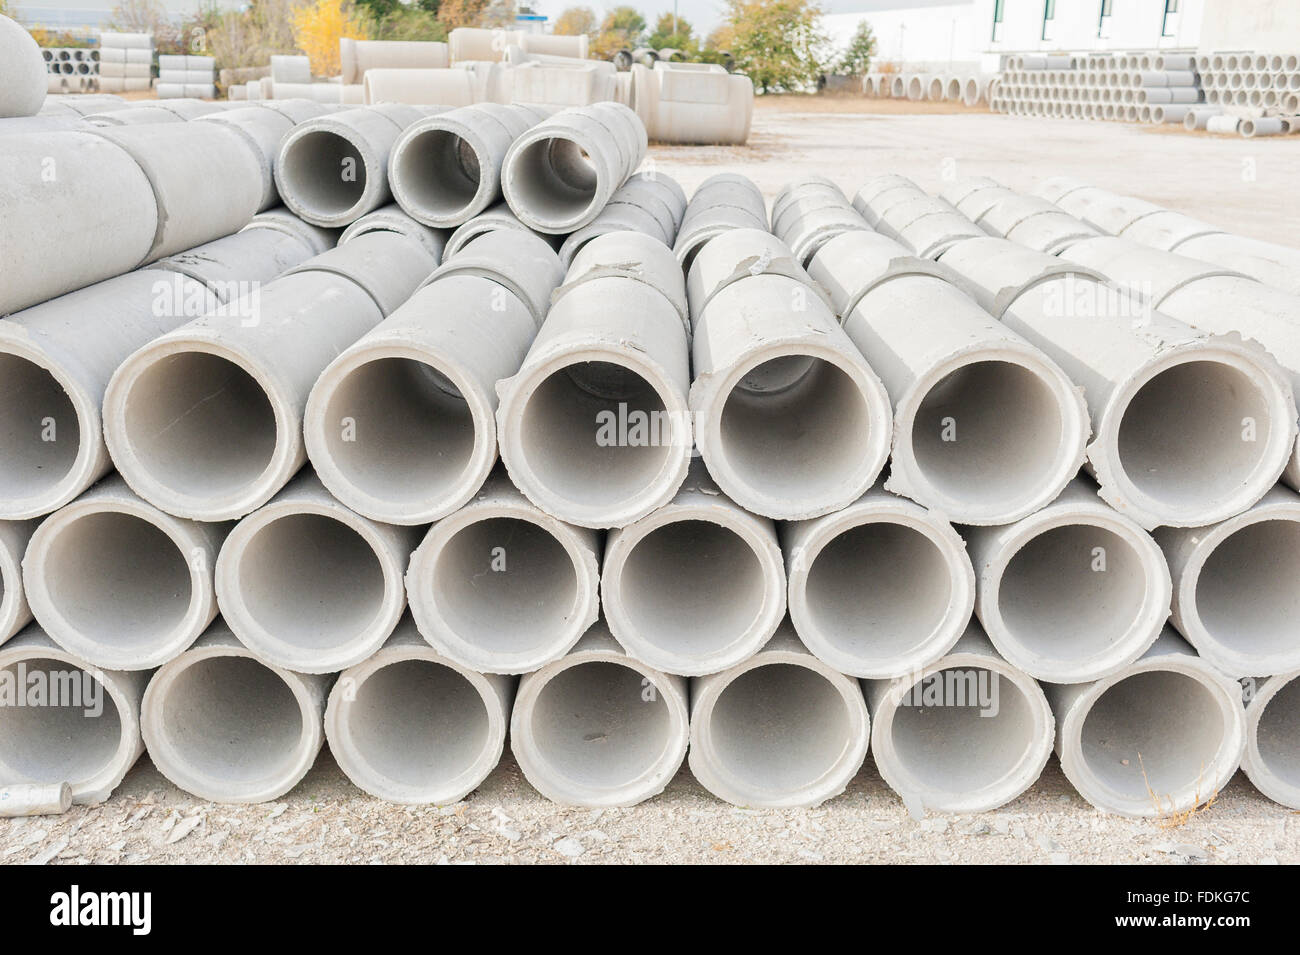 Concrete drainage pipes for industrial building construction. - Stock Image & Industrial Concrete Drainage Pipes Stacked Stock Photos u0026 Industrial ...